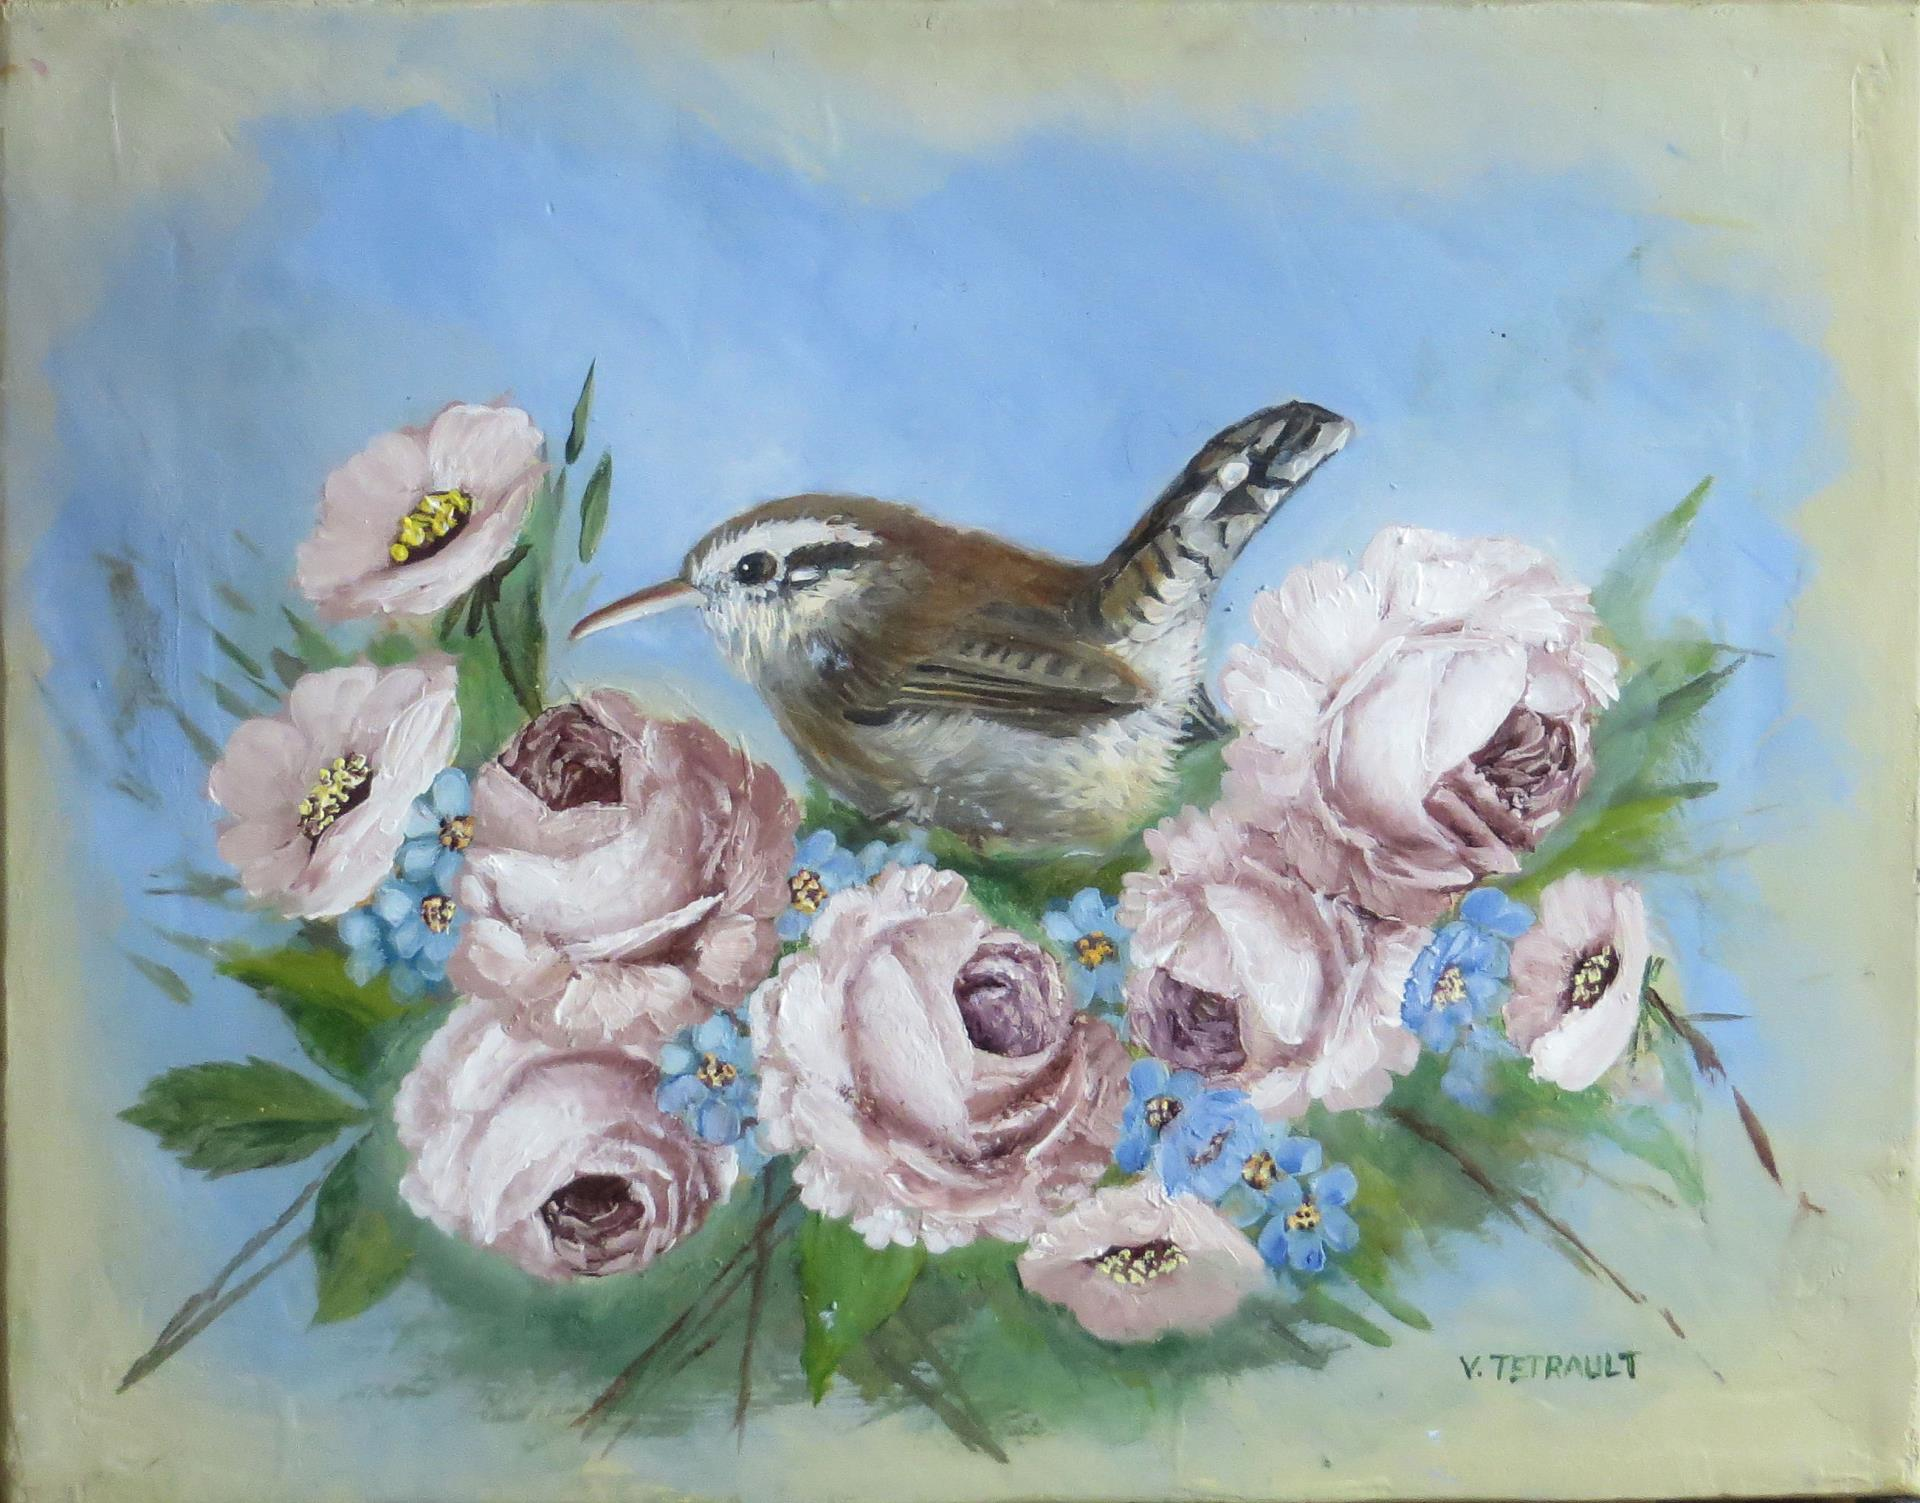 28b Velvet Tetrault - Bewicks Wren with Roses and Violets - acrylic